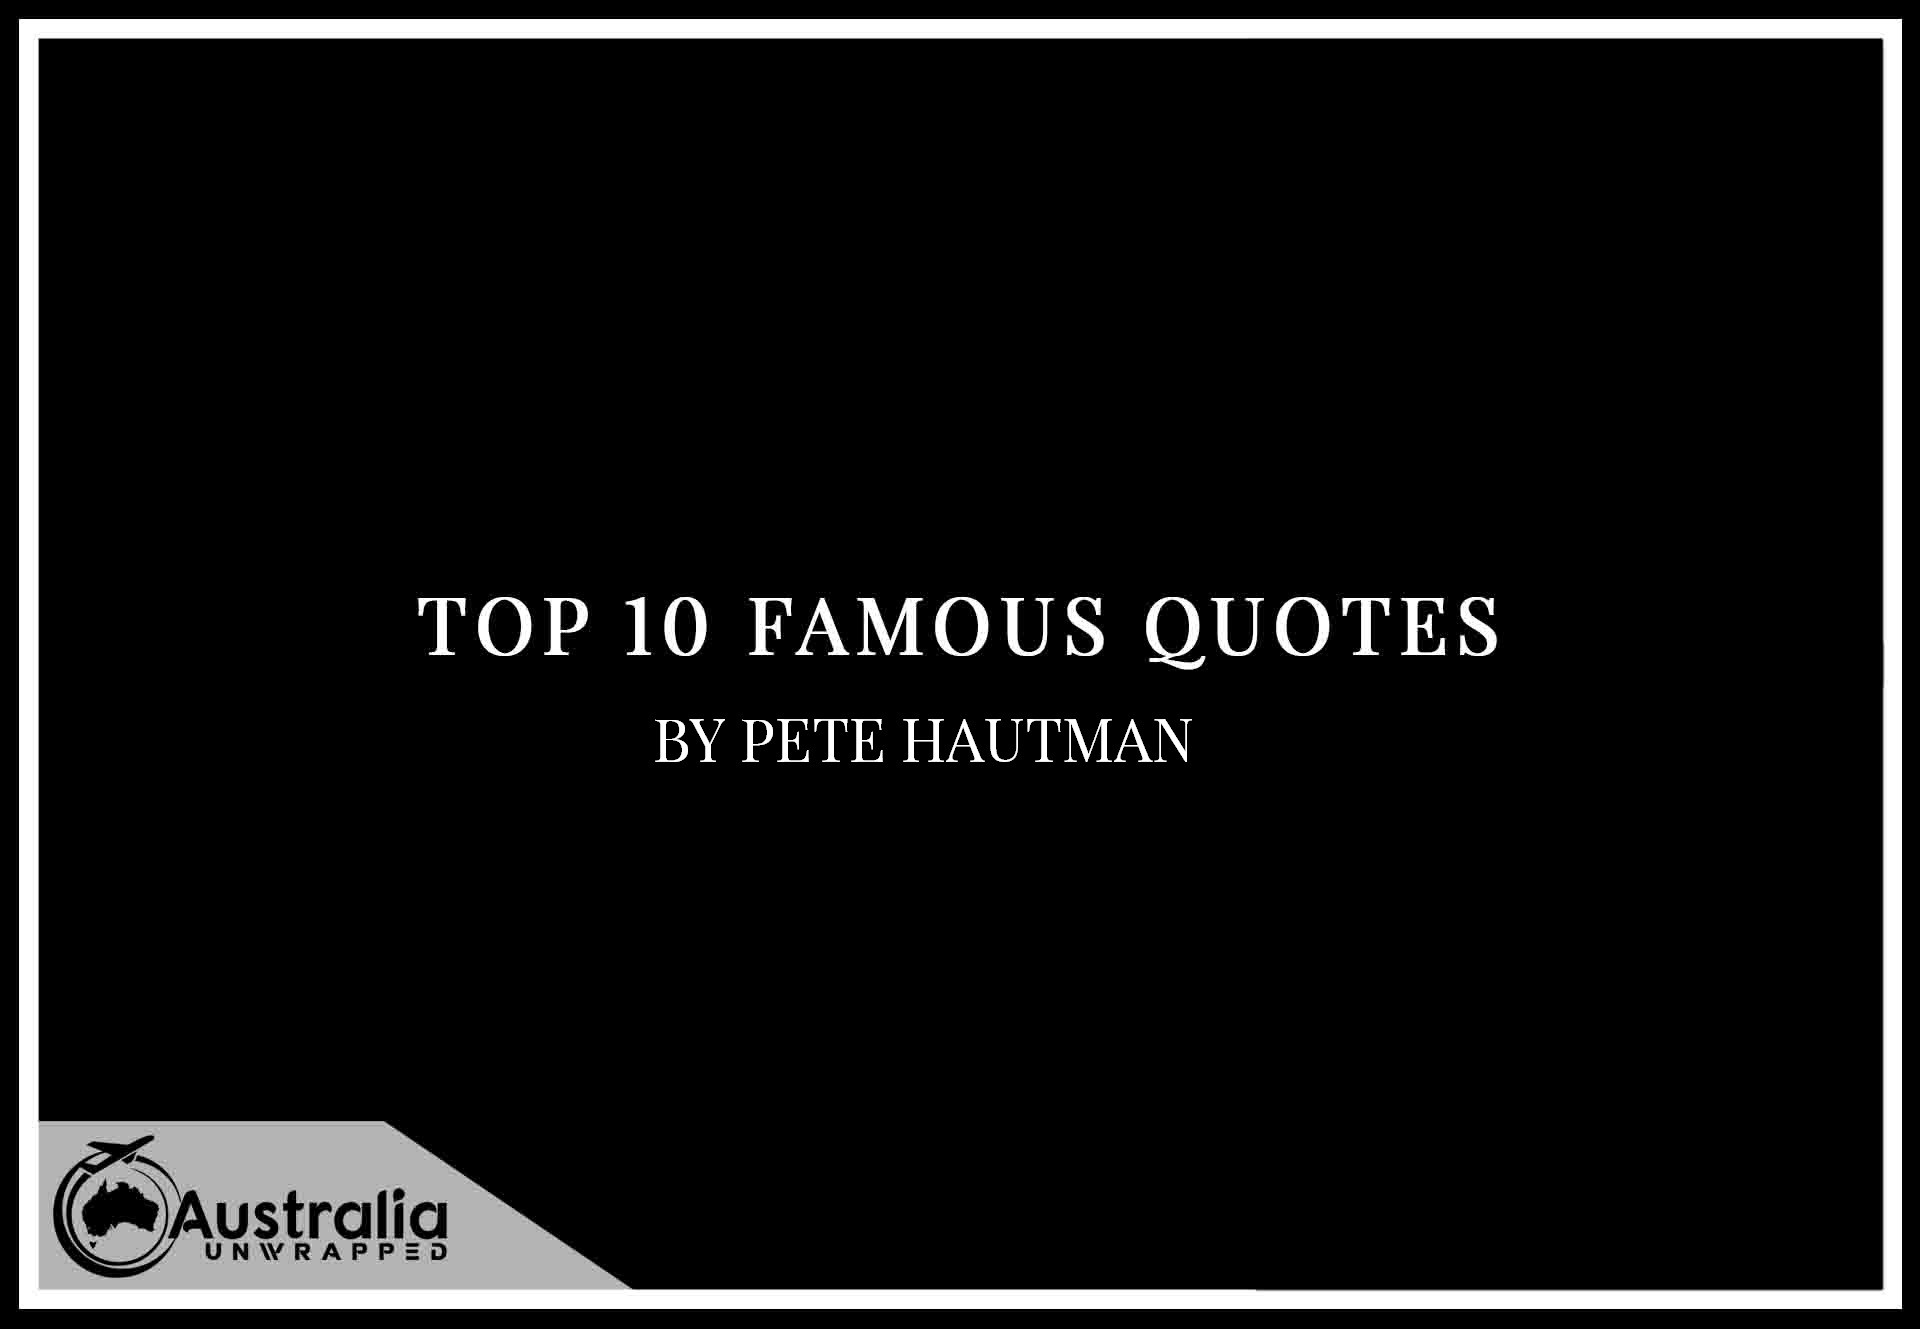 Top 10 Famous Quotes by Author Pete Hautman